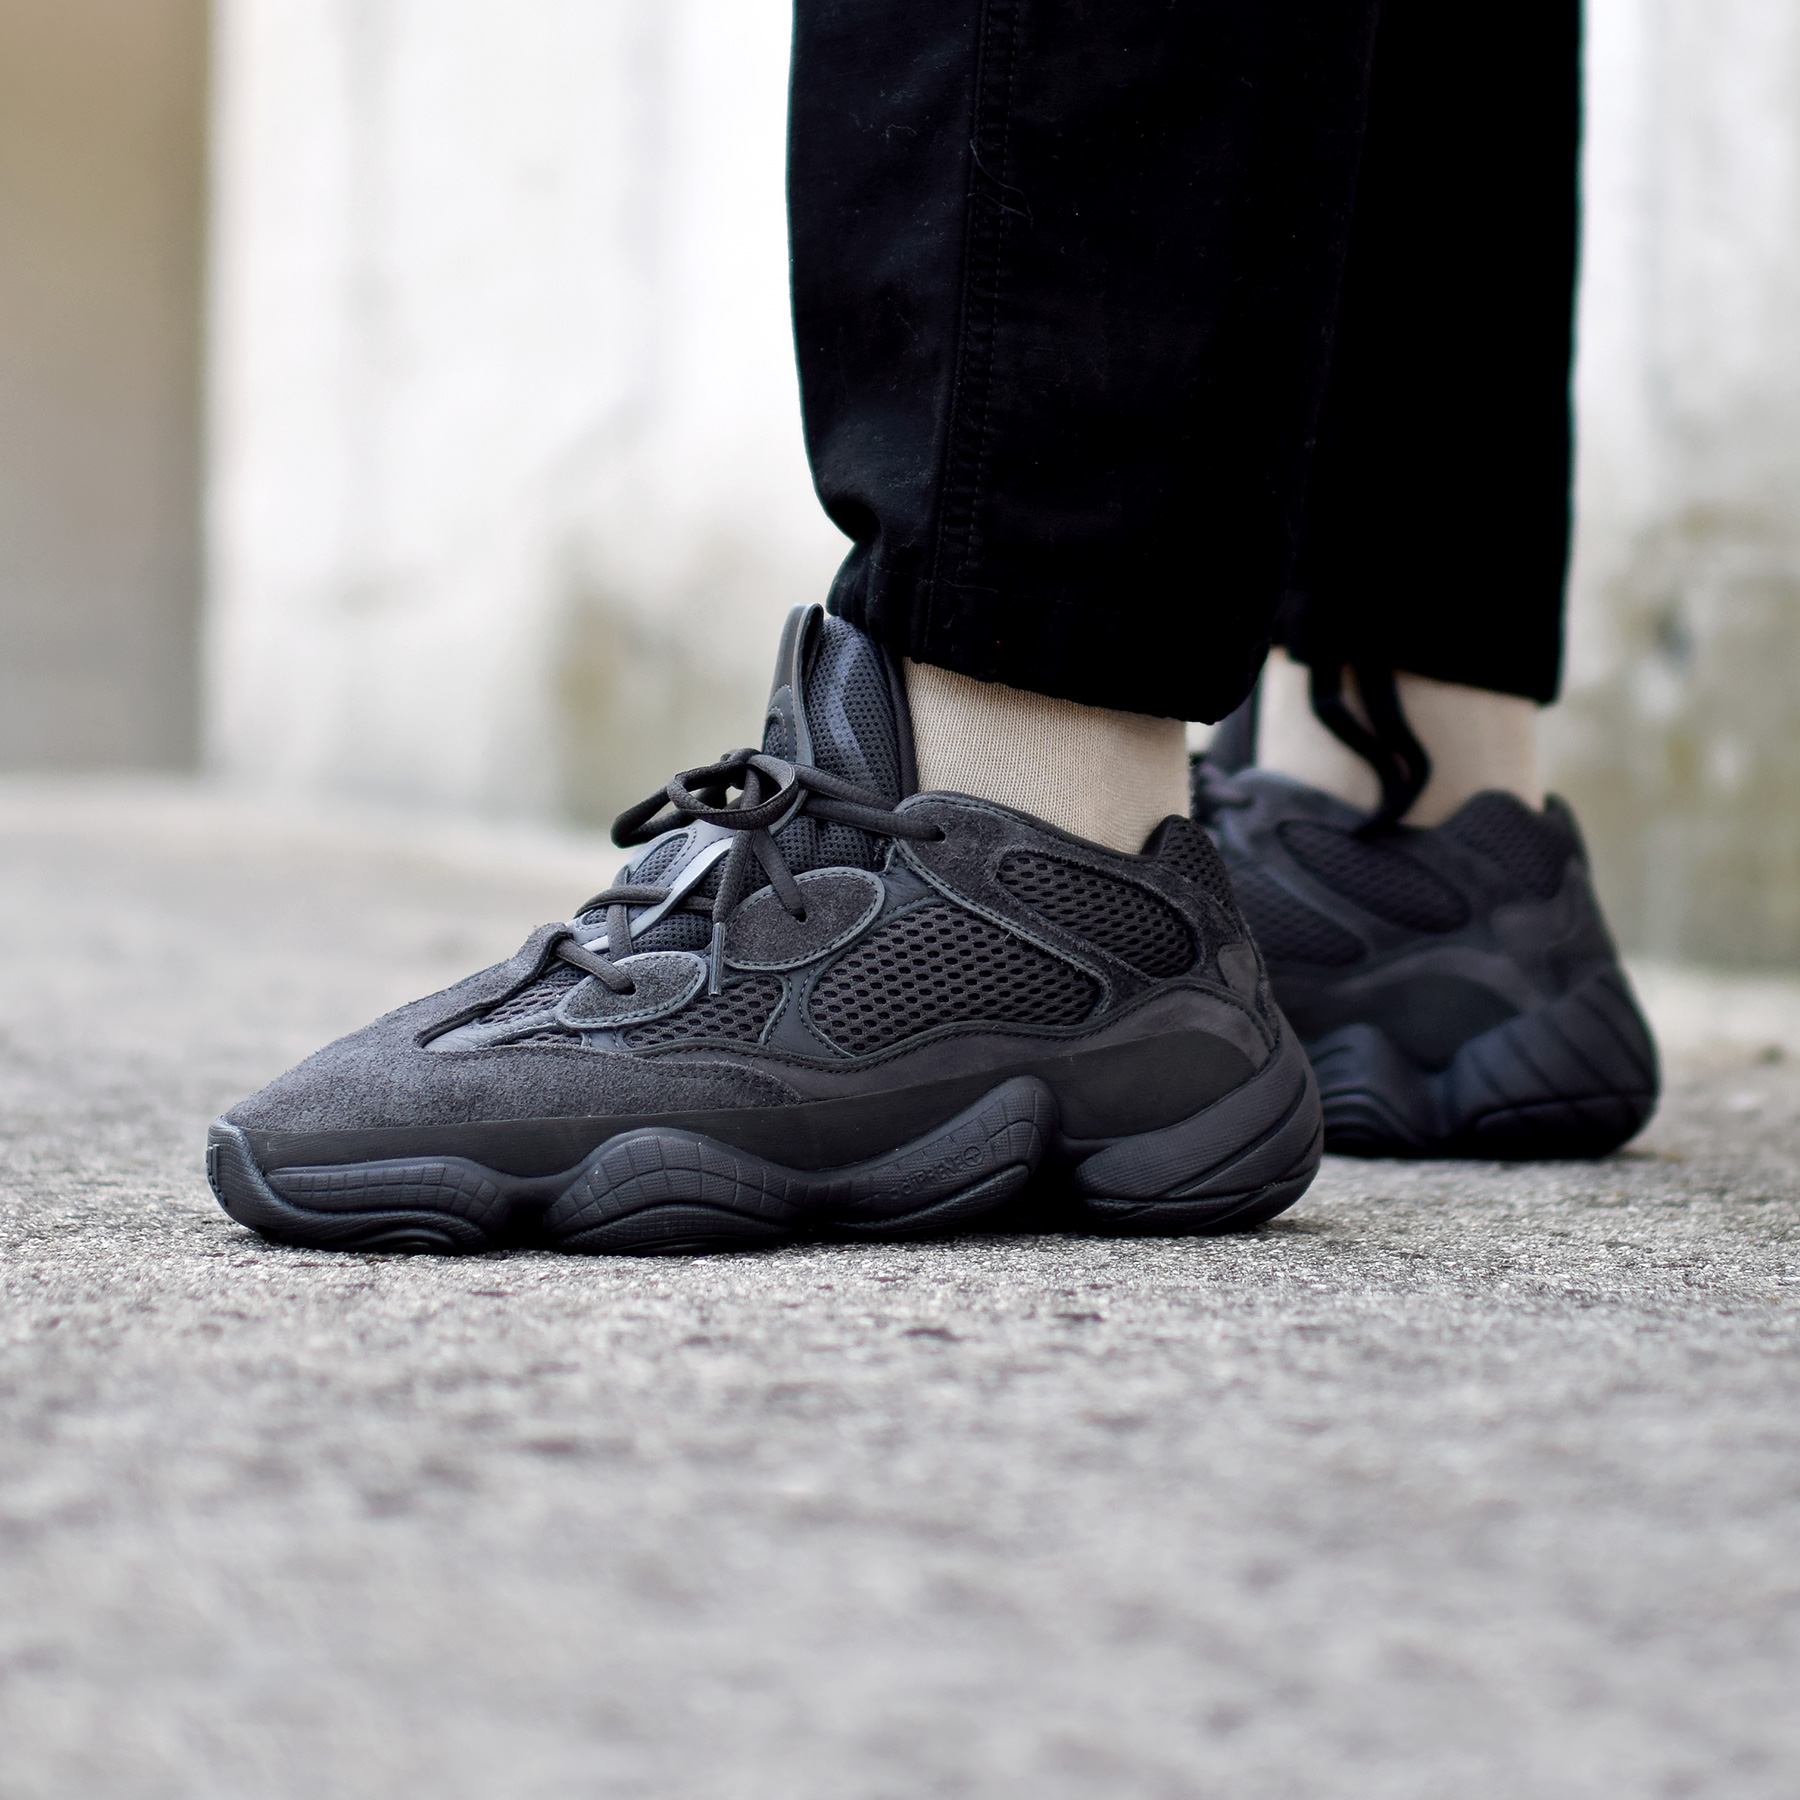 save off 6b7f0 a41cc Yeezy 500 Utility Black - Sneakers.fr